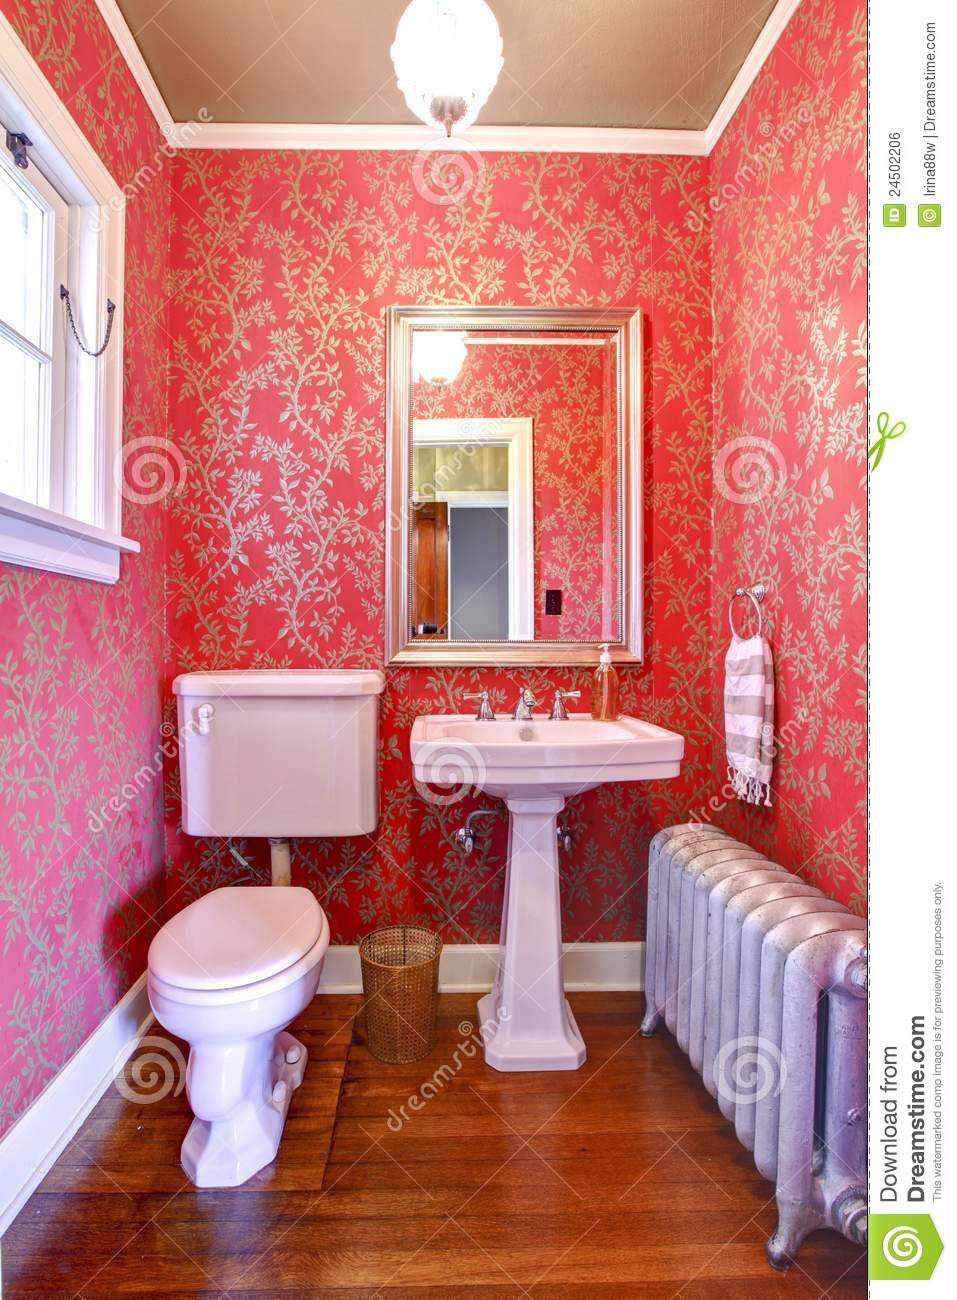 Baño De Lujo Pequeno:Red and Gold Small Bathroom Design